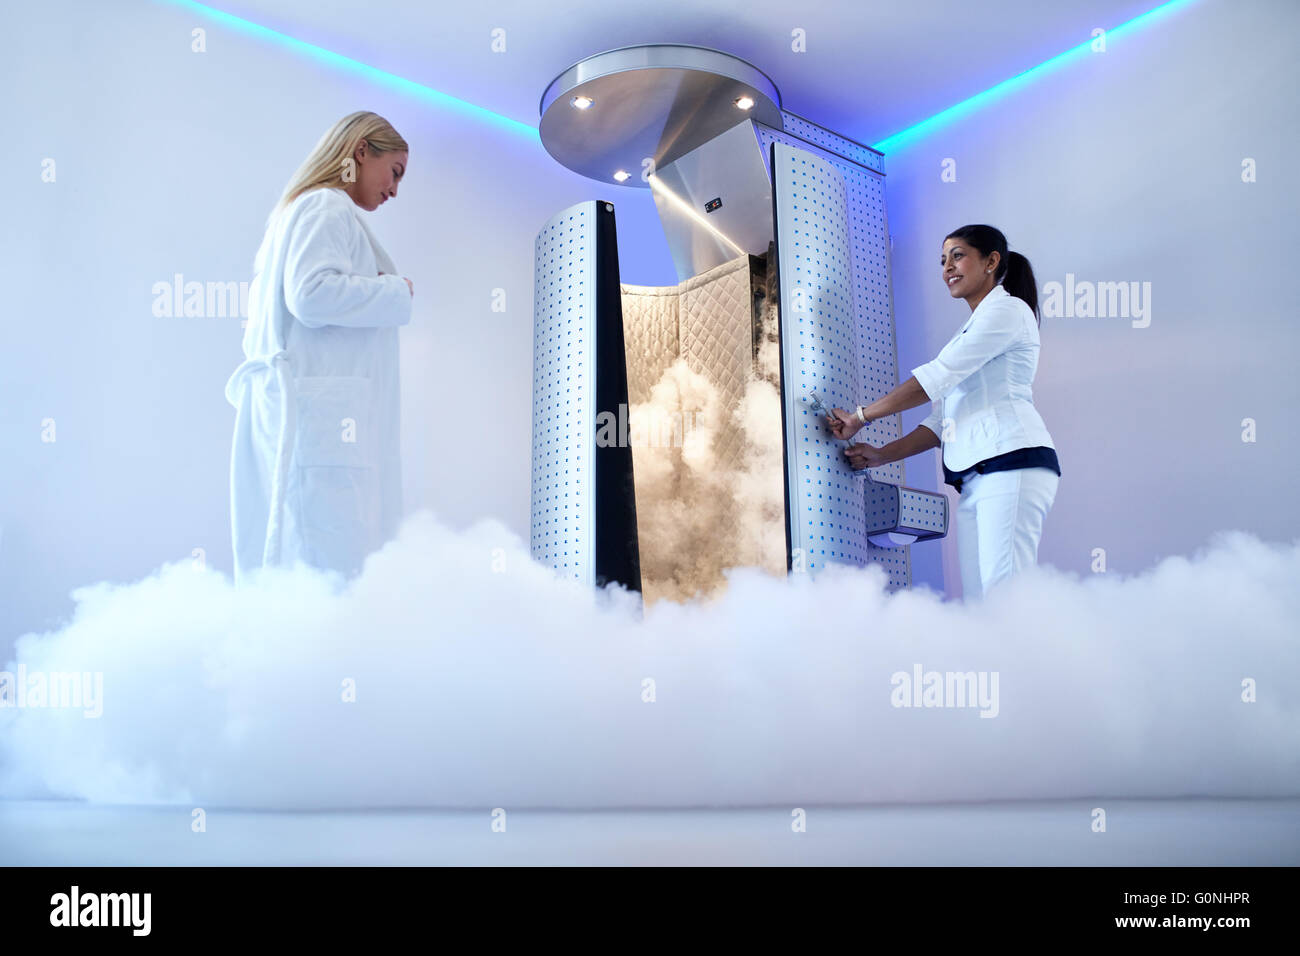 Portrait of woman going for cryotherapy treatment in cryosauna booth. - Stock Image